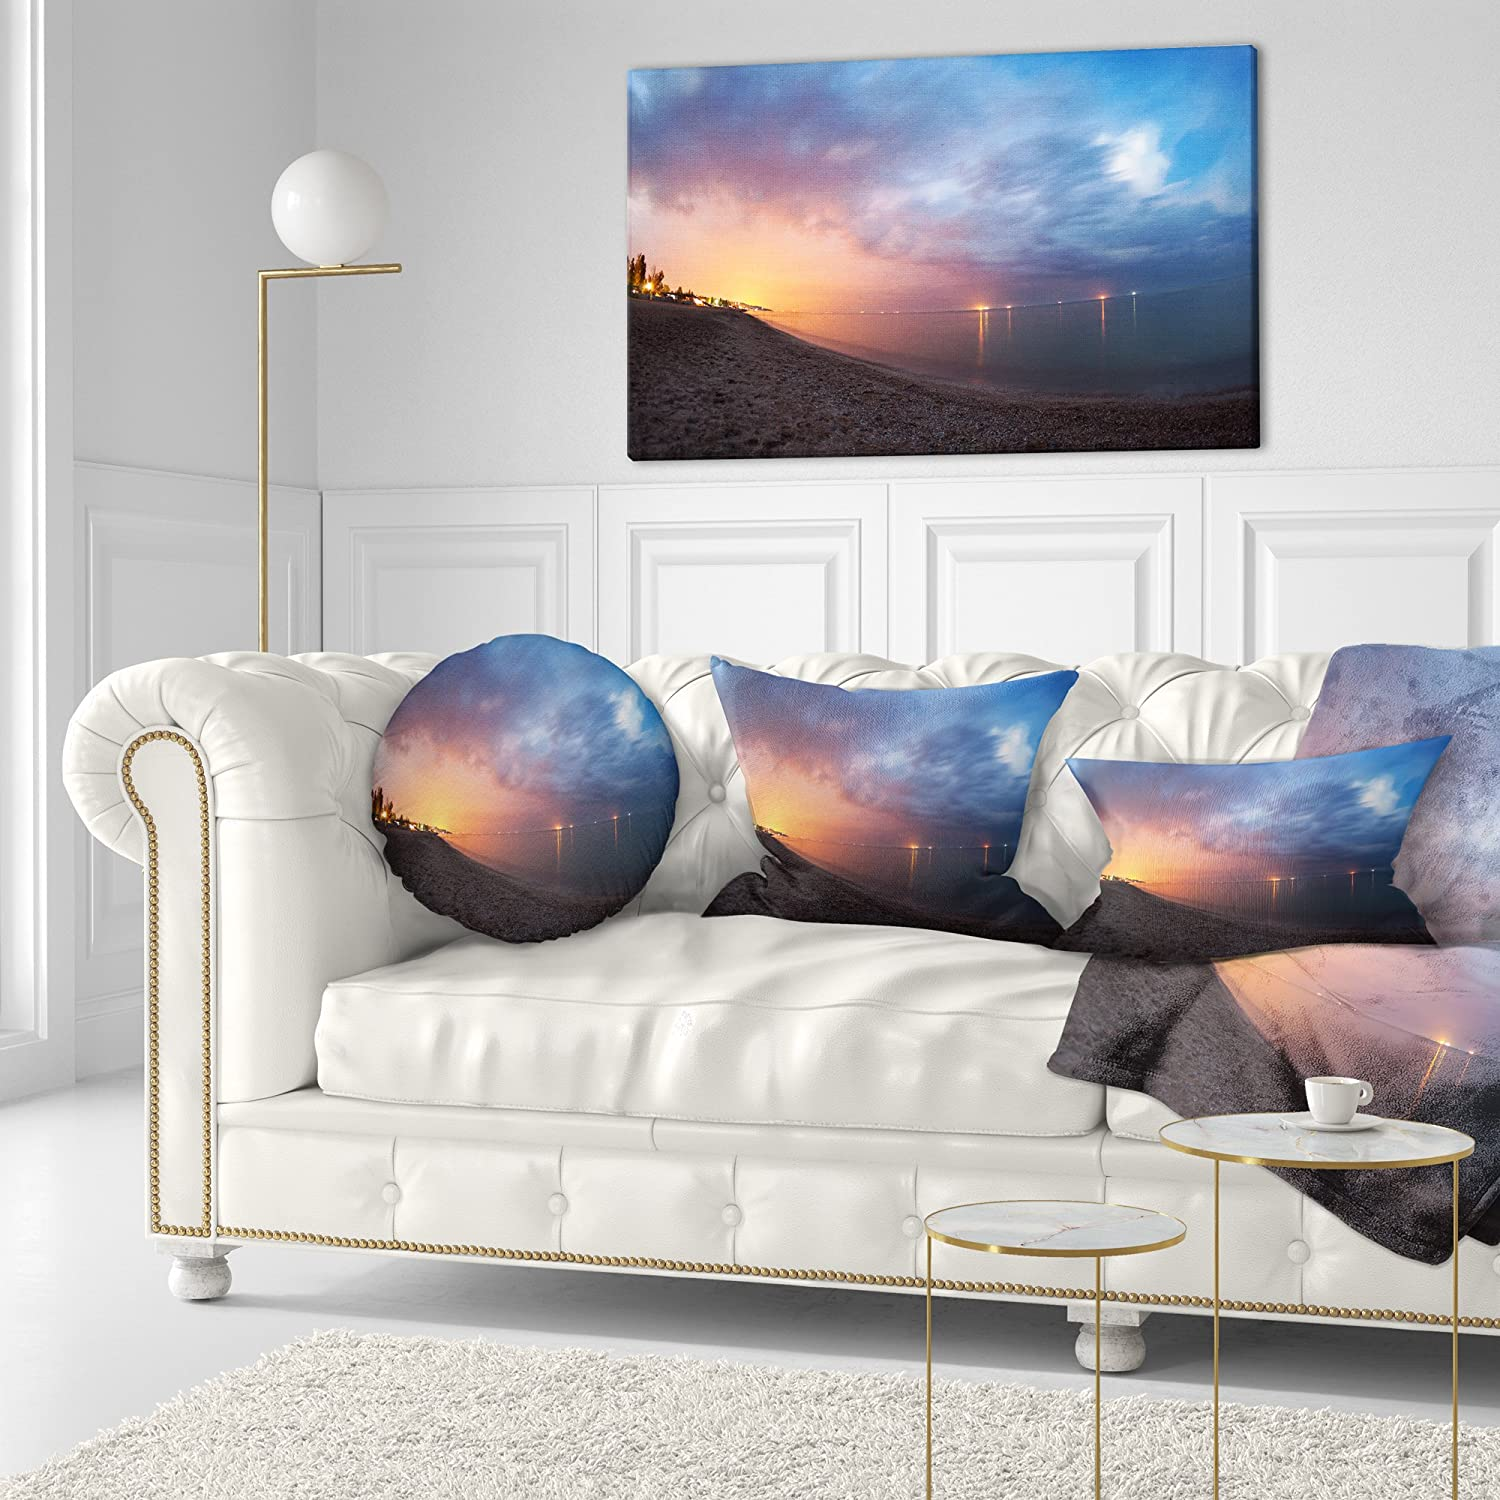 Home Kitchen Sofa Throw Pillow 20 Designart Cu9353 20 20 C Summer Night With Blue Sky Skyline Photography Round Cushion Cover For Living Room Decorative Pillows Inserts Covers